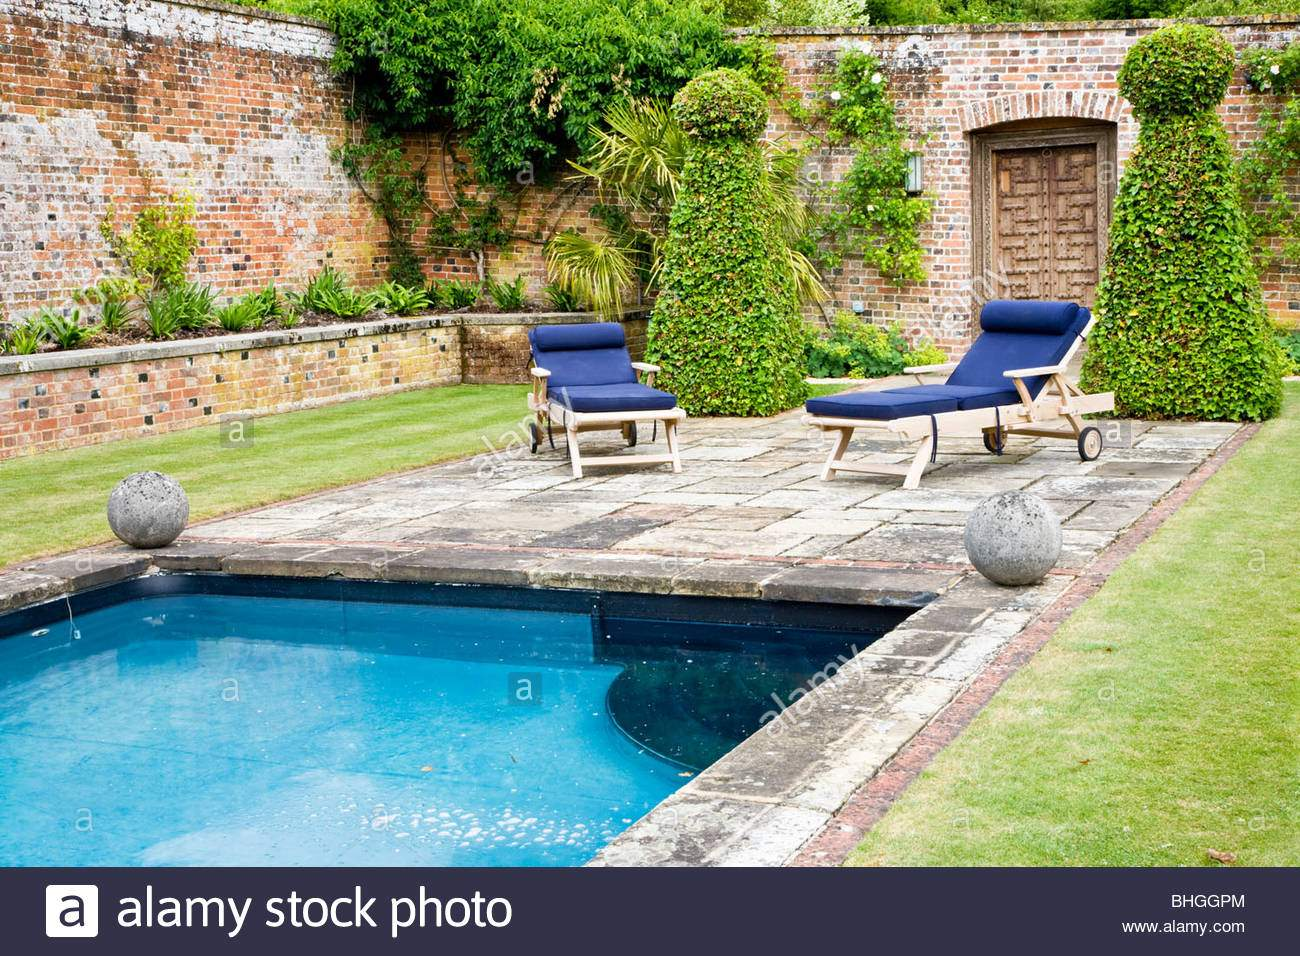 Swimming Pool Garten Schön Garden Swimming Pool Uk Stockfotos & Garden Swimming Pool Uk